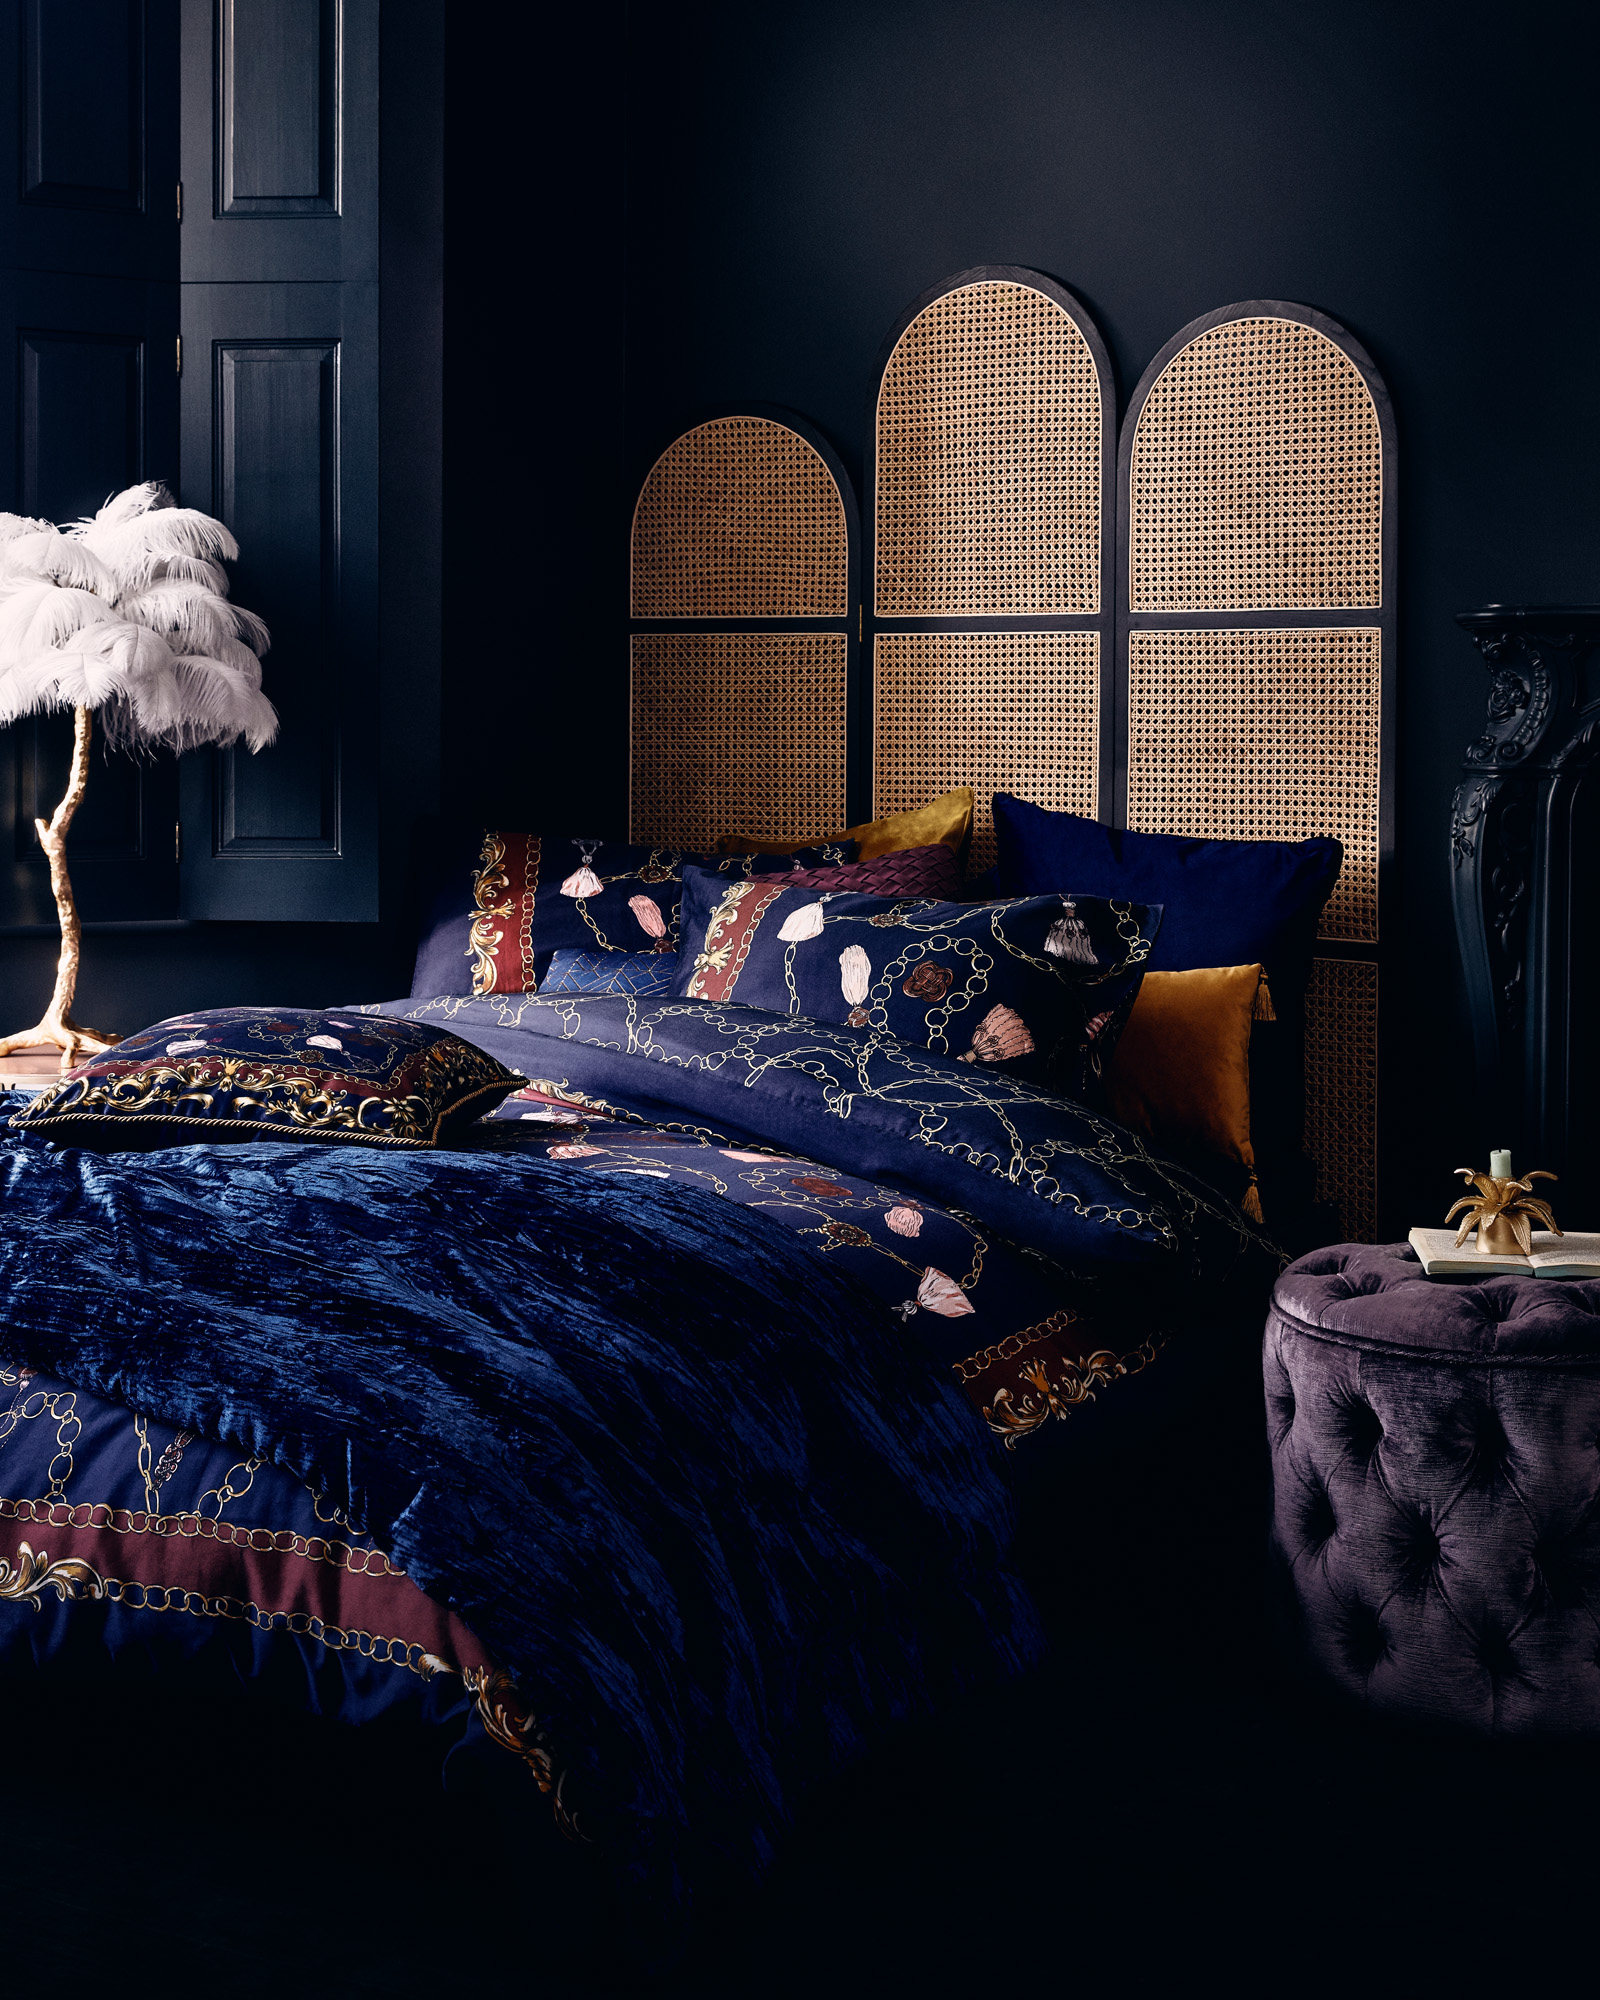 190820_PRIMARK_WK4_DARKFOREST_LUXURYBEDROOM_PRESS_0061_MASTER_2